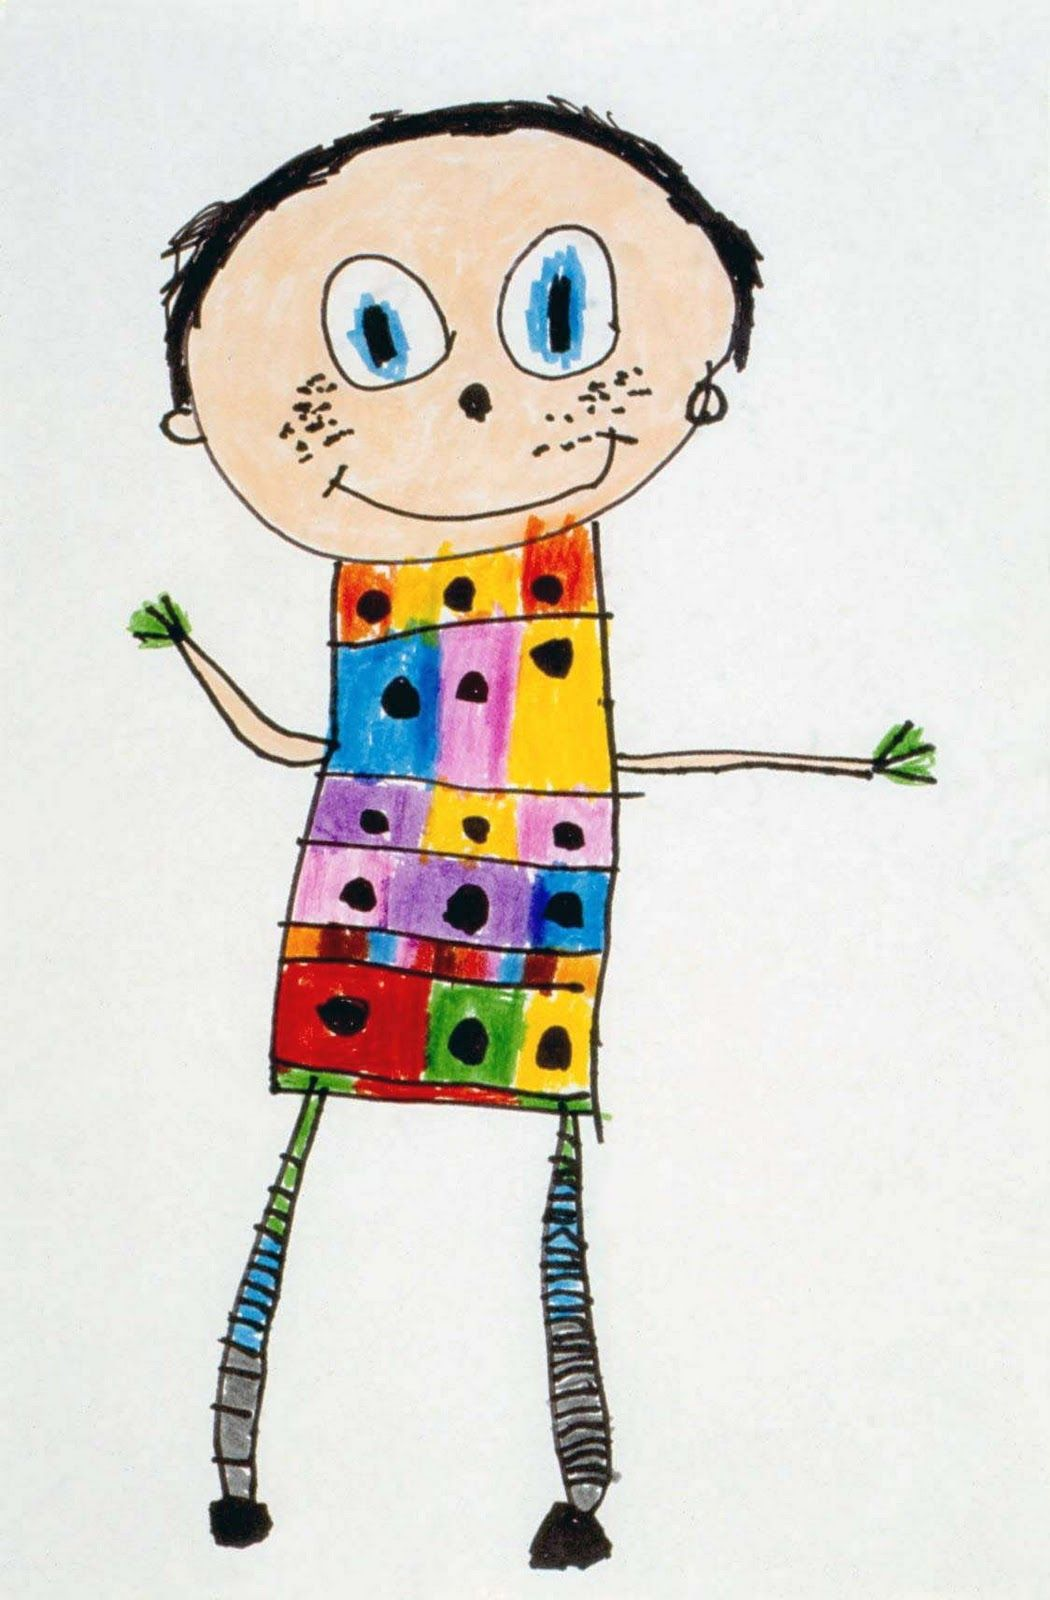 How To Teach A Child To Draw A Self Portrait Exercises To Make Them